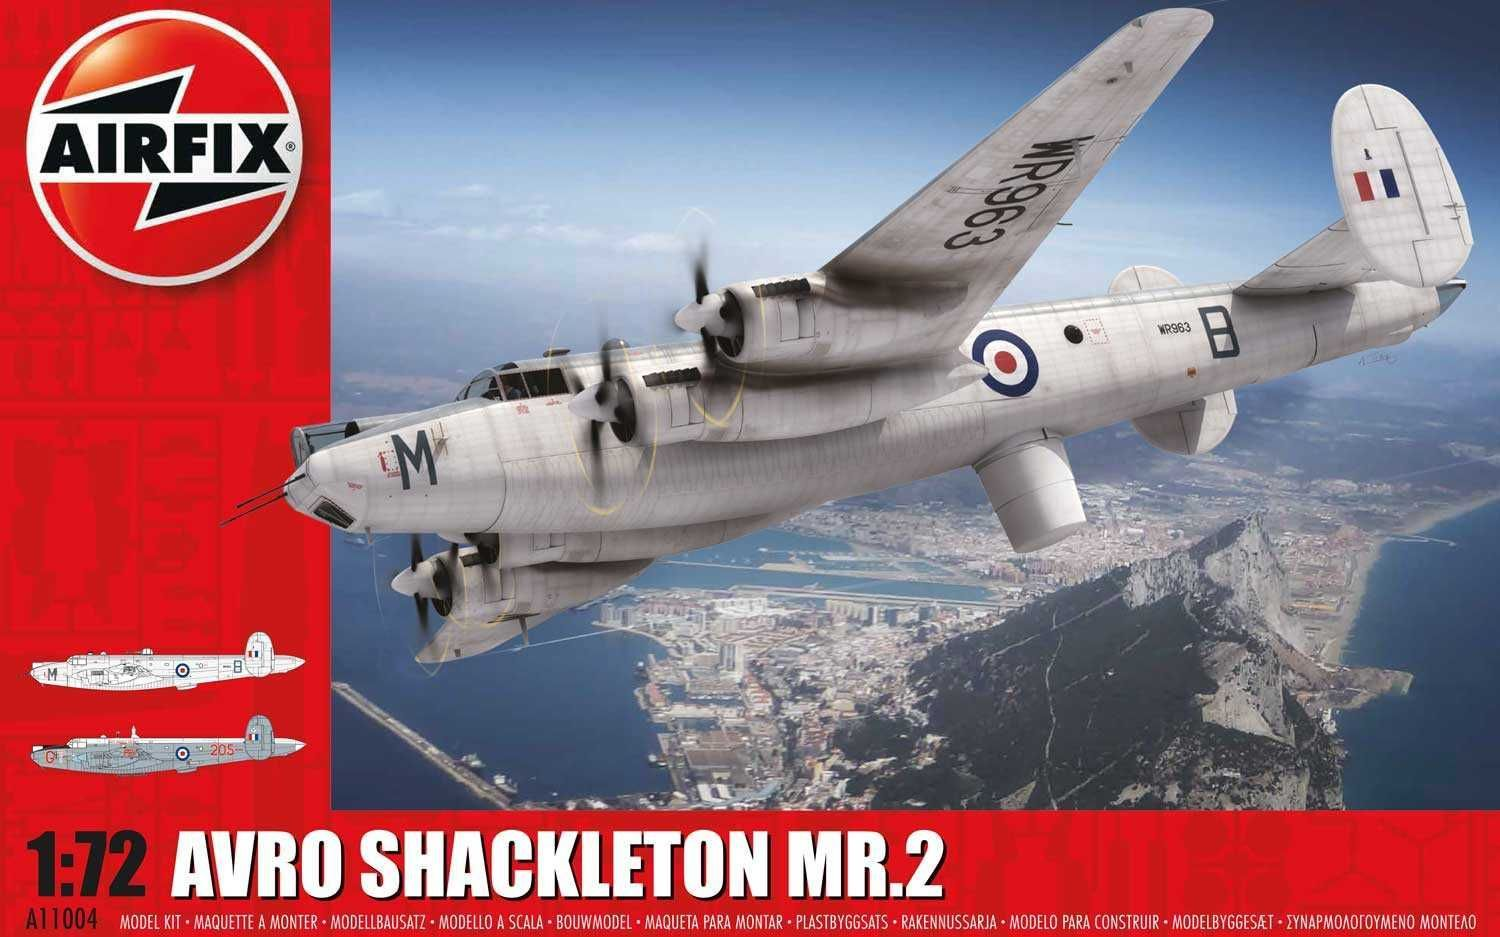 Airfix Classic Kit letadlo A11004 - Avro Shackleton MR2 (1:72)